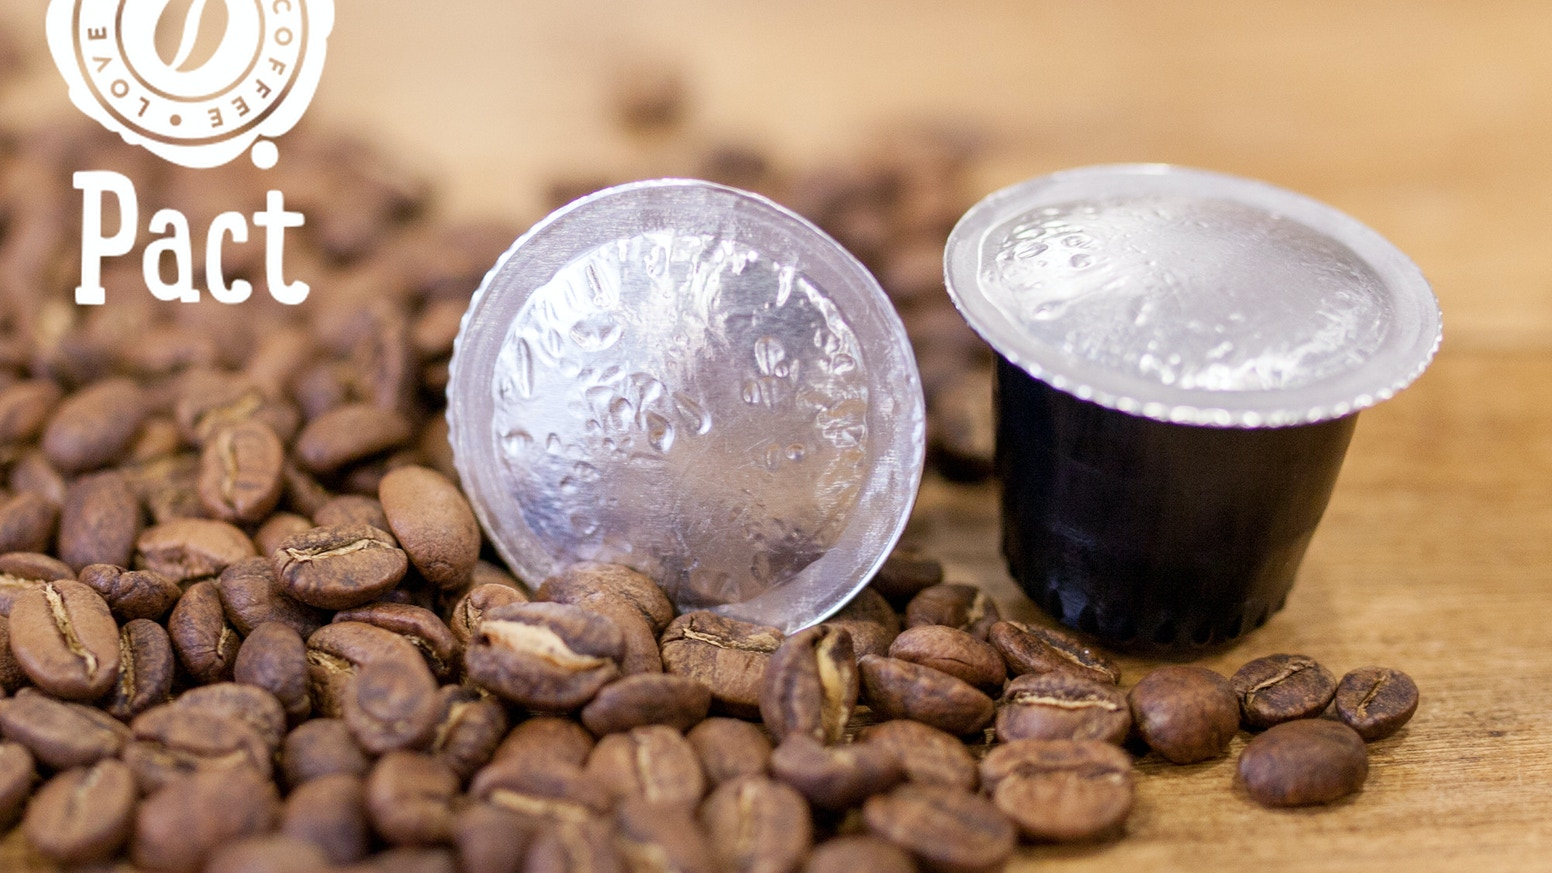 Pact's incredible speciality coffee, packed into NespressoⓇ compatible pods within 7 days of roasting.